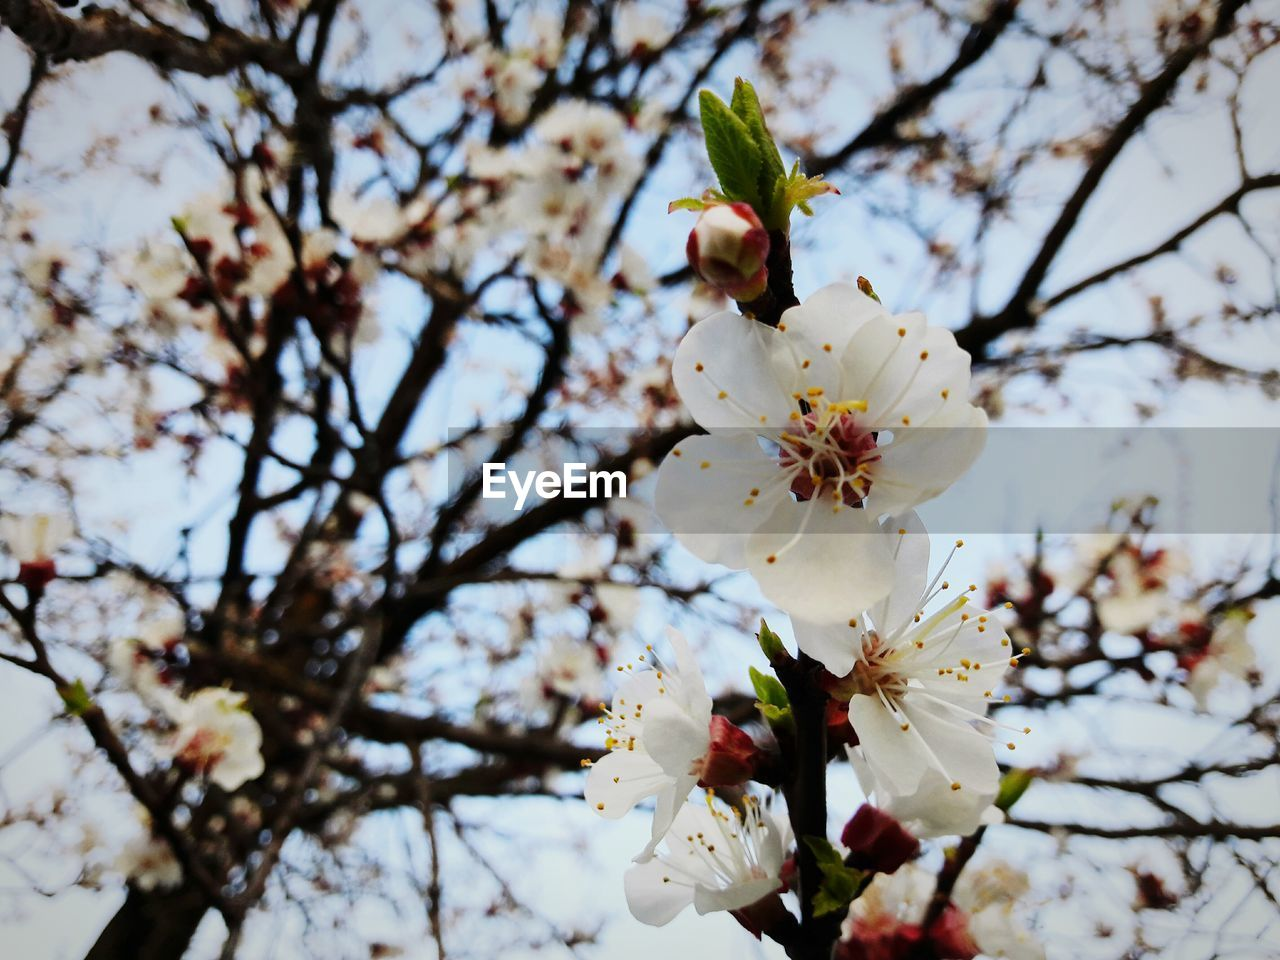 flower, fragility, blossom, white color, cherry blossom, tree, freshness, branch, springtime, apple blossom, beauty in nature, apple tree, cherry tree, petal, orchard, growth, nature, almond tree, flower head, botany, twig, plum blossom, pollen, stamen, no people, low angle view, close-up, selective focus, day, blooming, outdoors